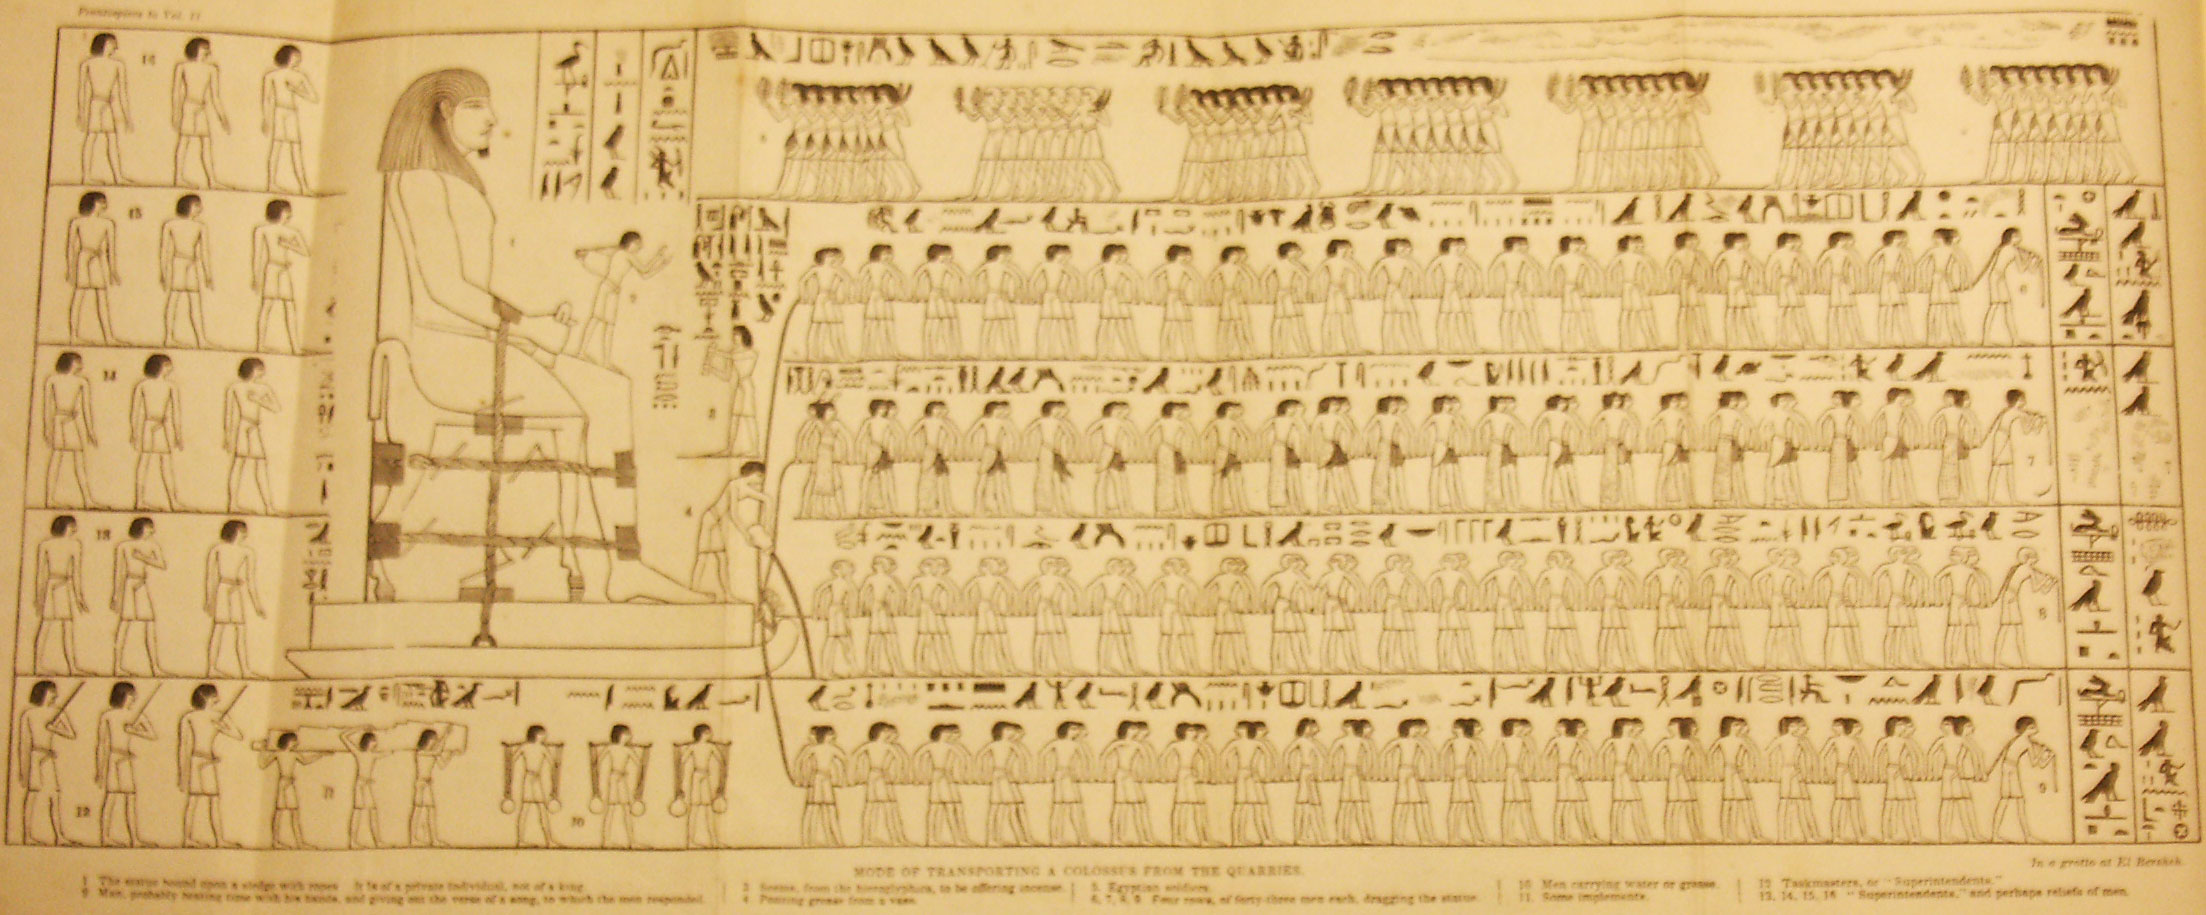 ancient egyptian houses pictures Worksheets Pyramids